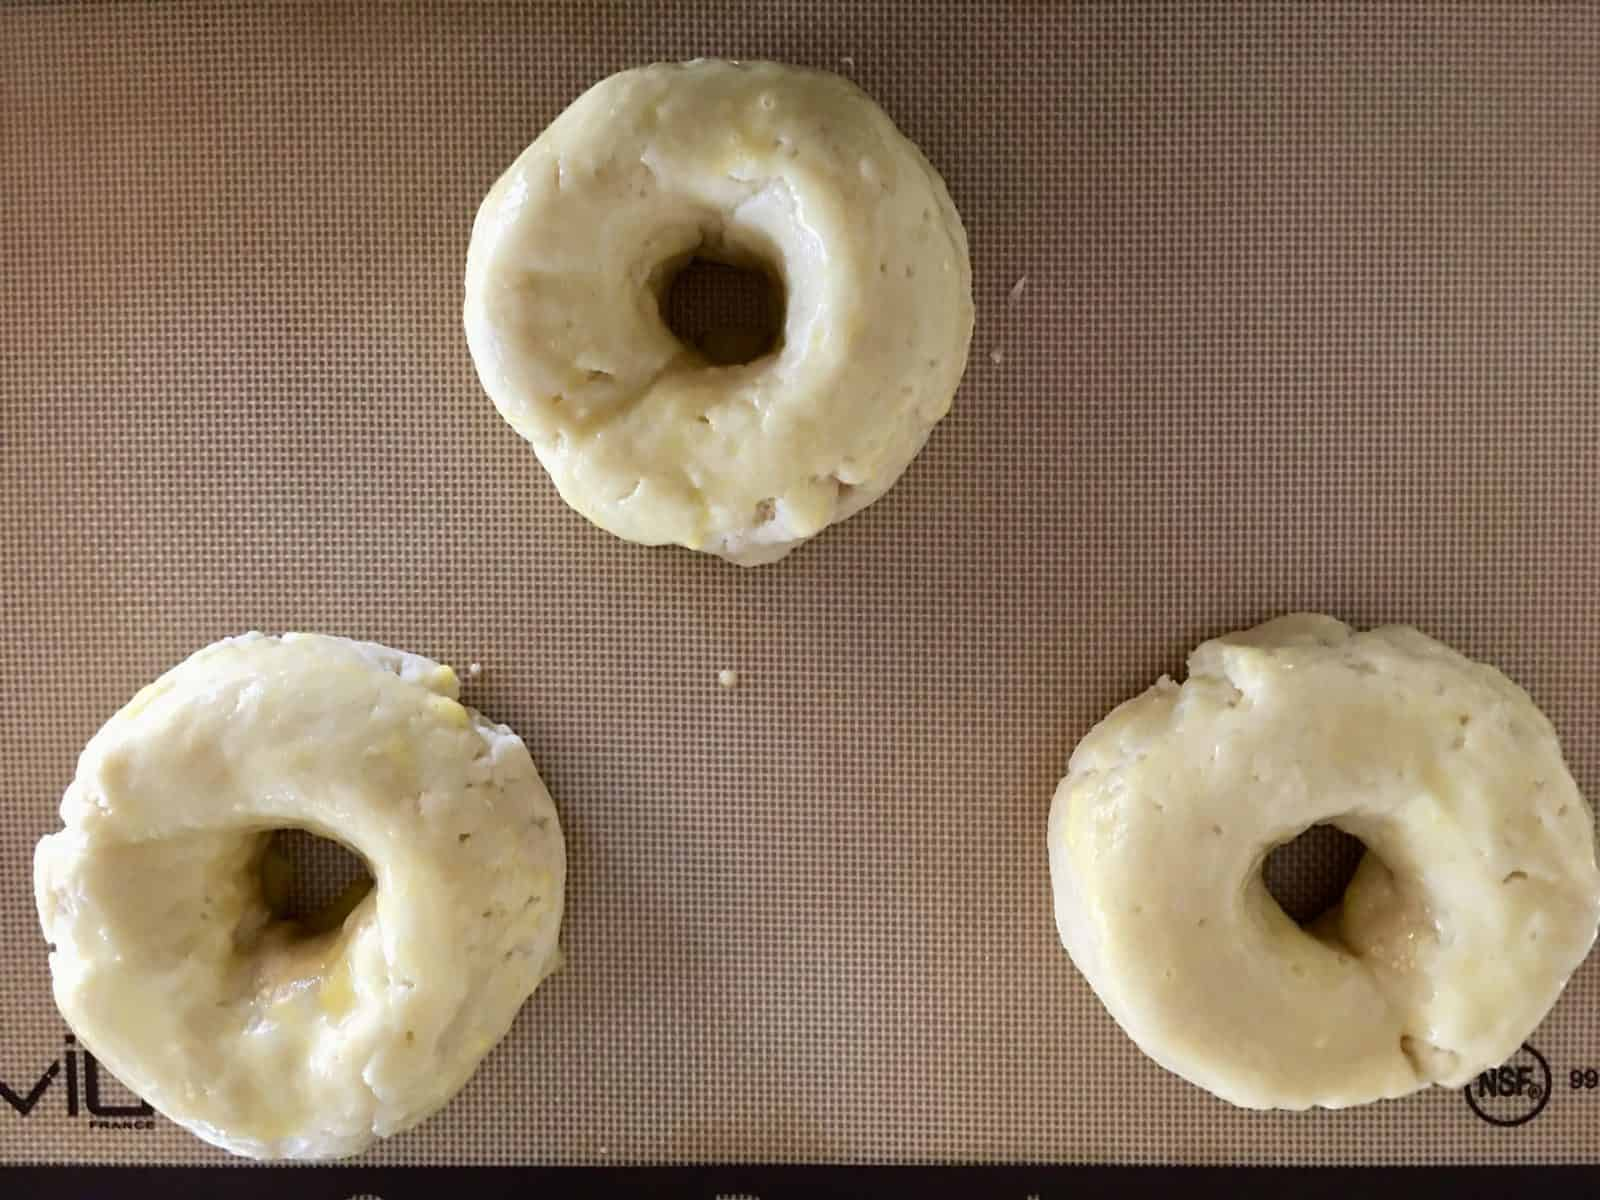 dough formed into donut shapes on a baking mat.